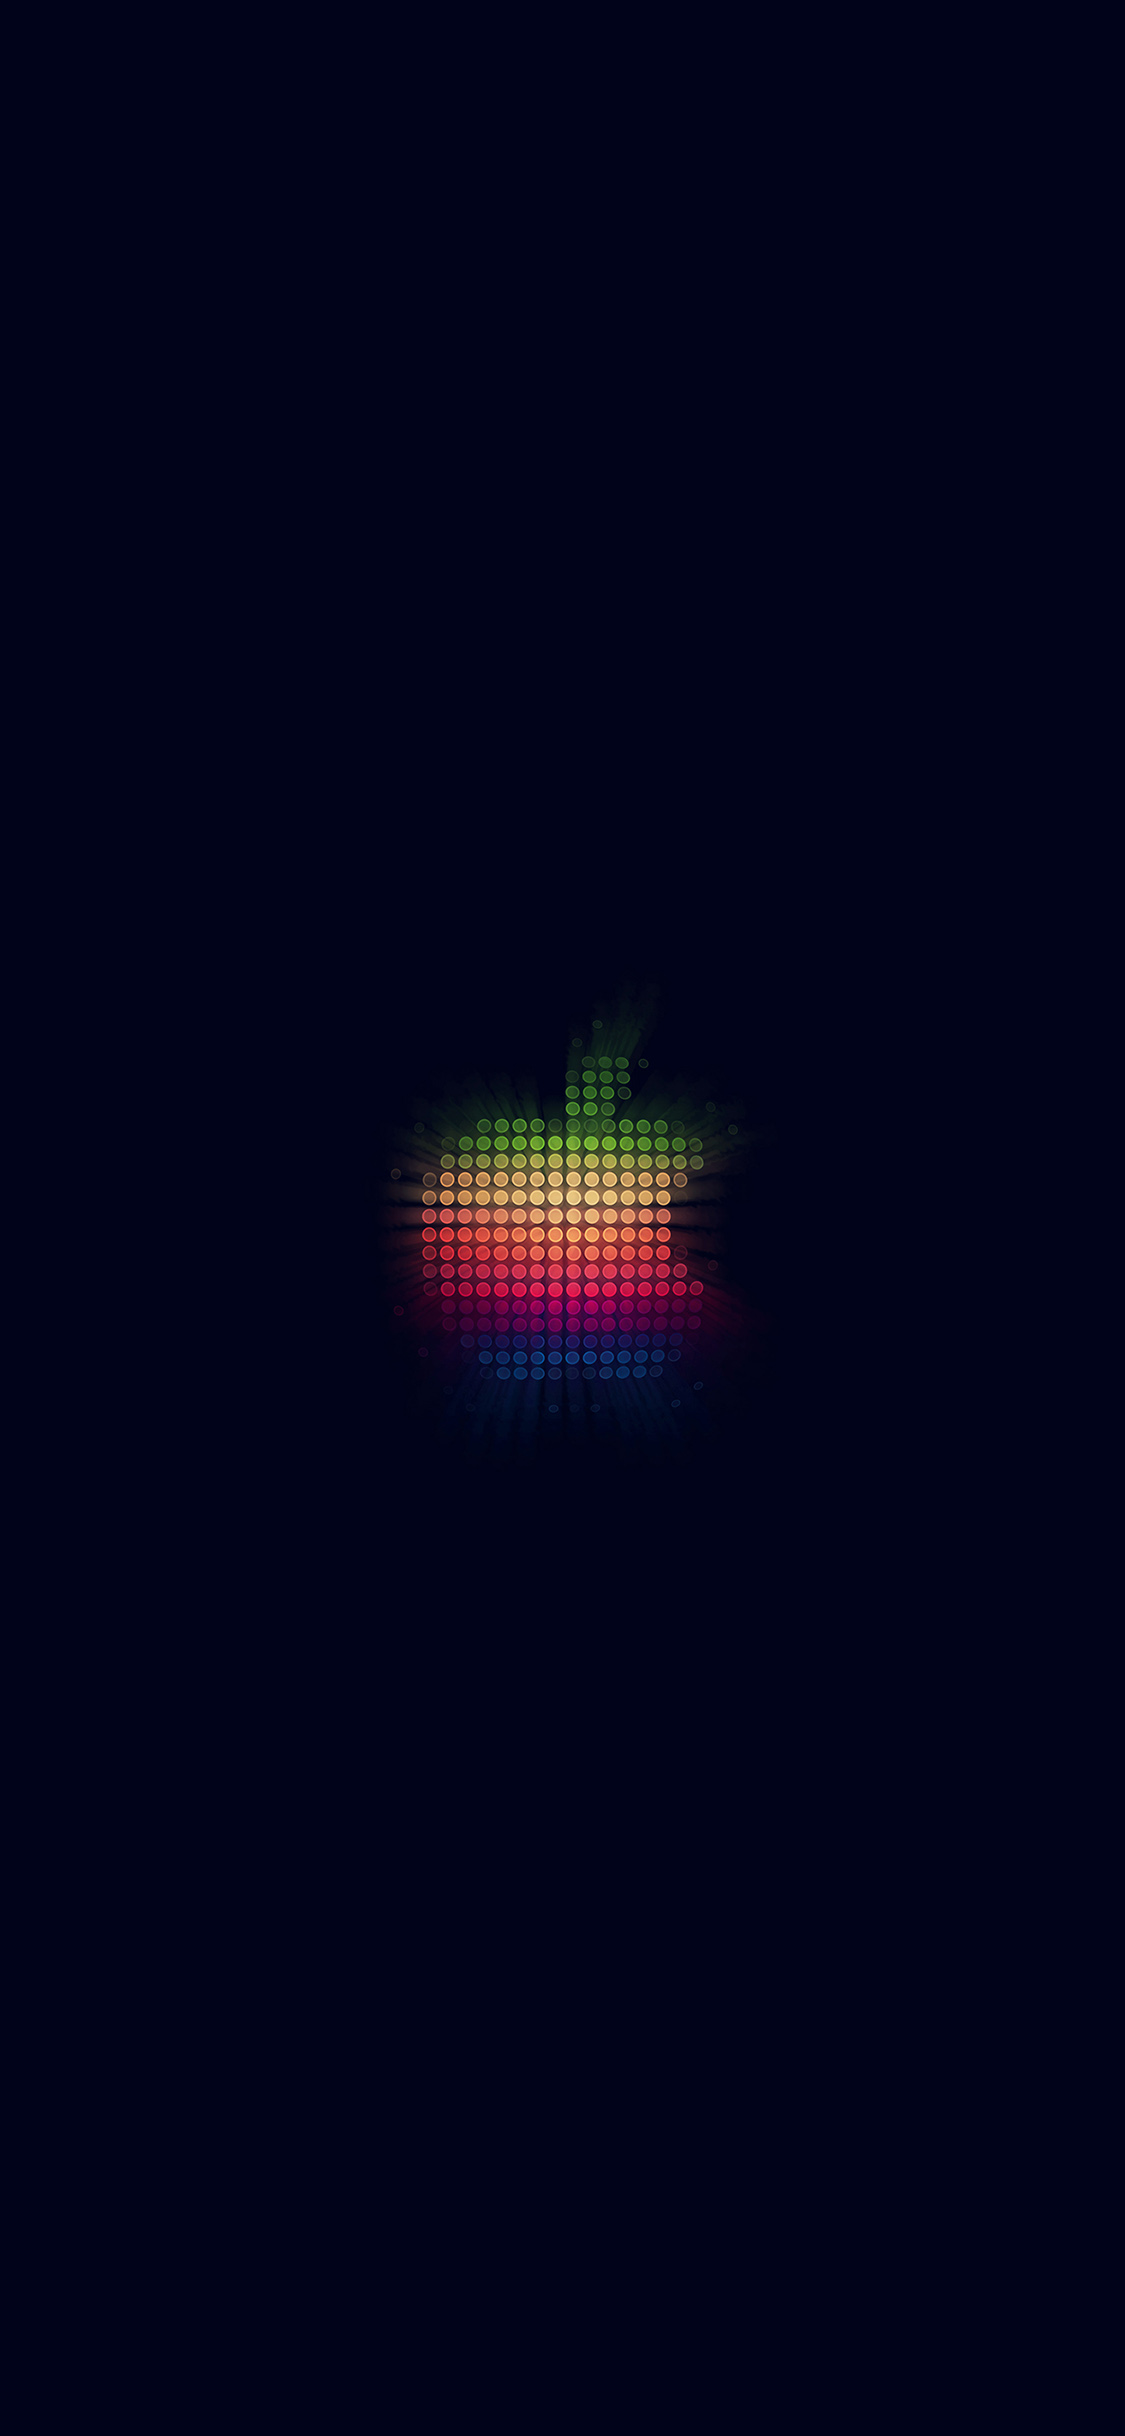 iPhoneXpapers.com-Apple-iPhone-wallpaper-at41-logo-apple-rainbow-pixel-art-illustration-blue